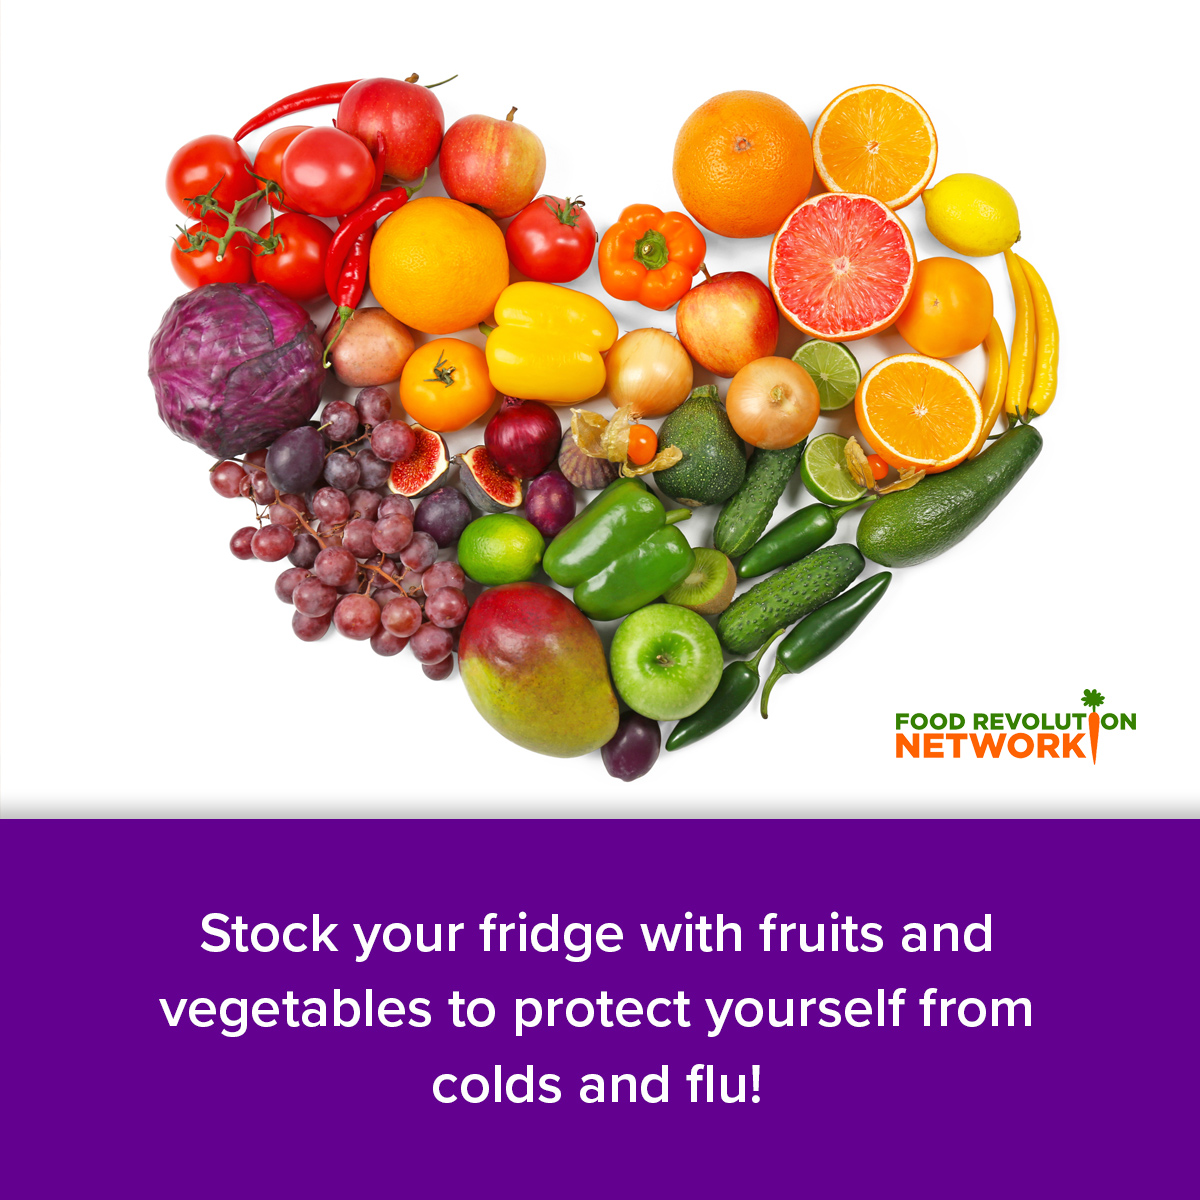 Stock your fridge with fruits and vegetables to protect yourself from colds and flu!